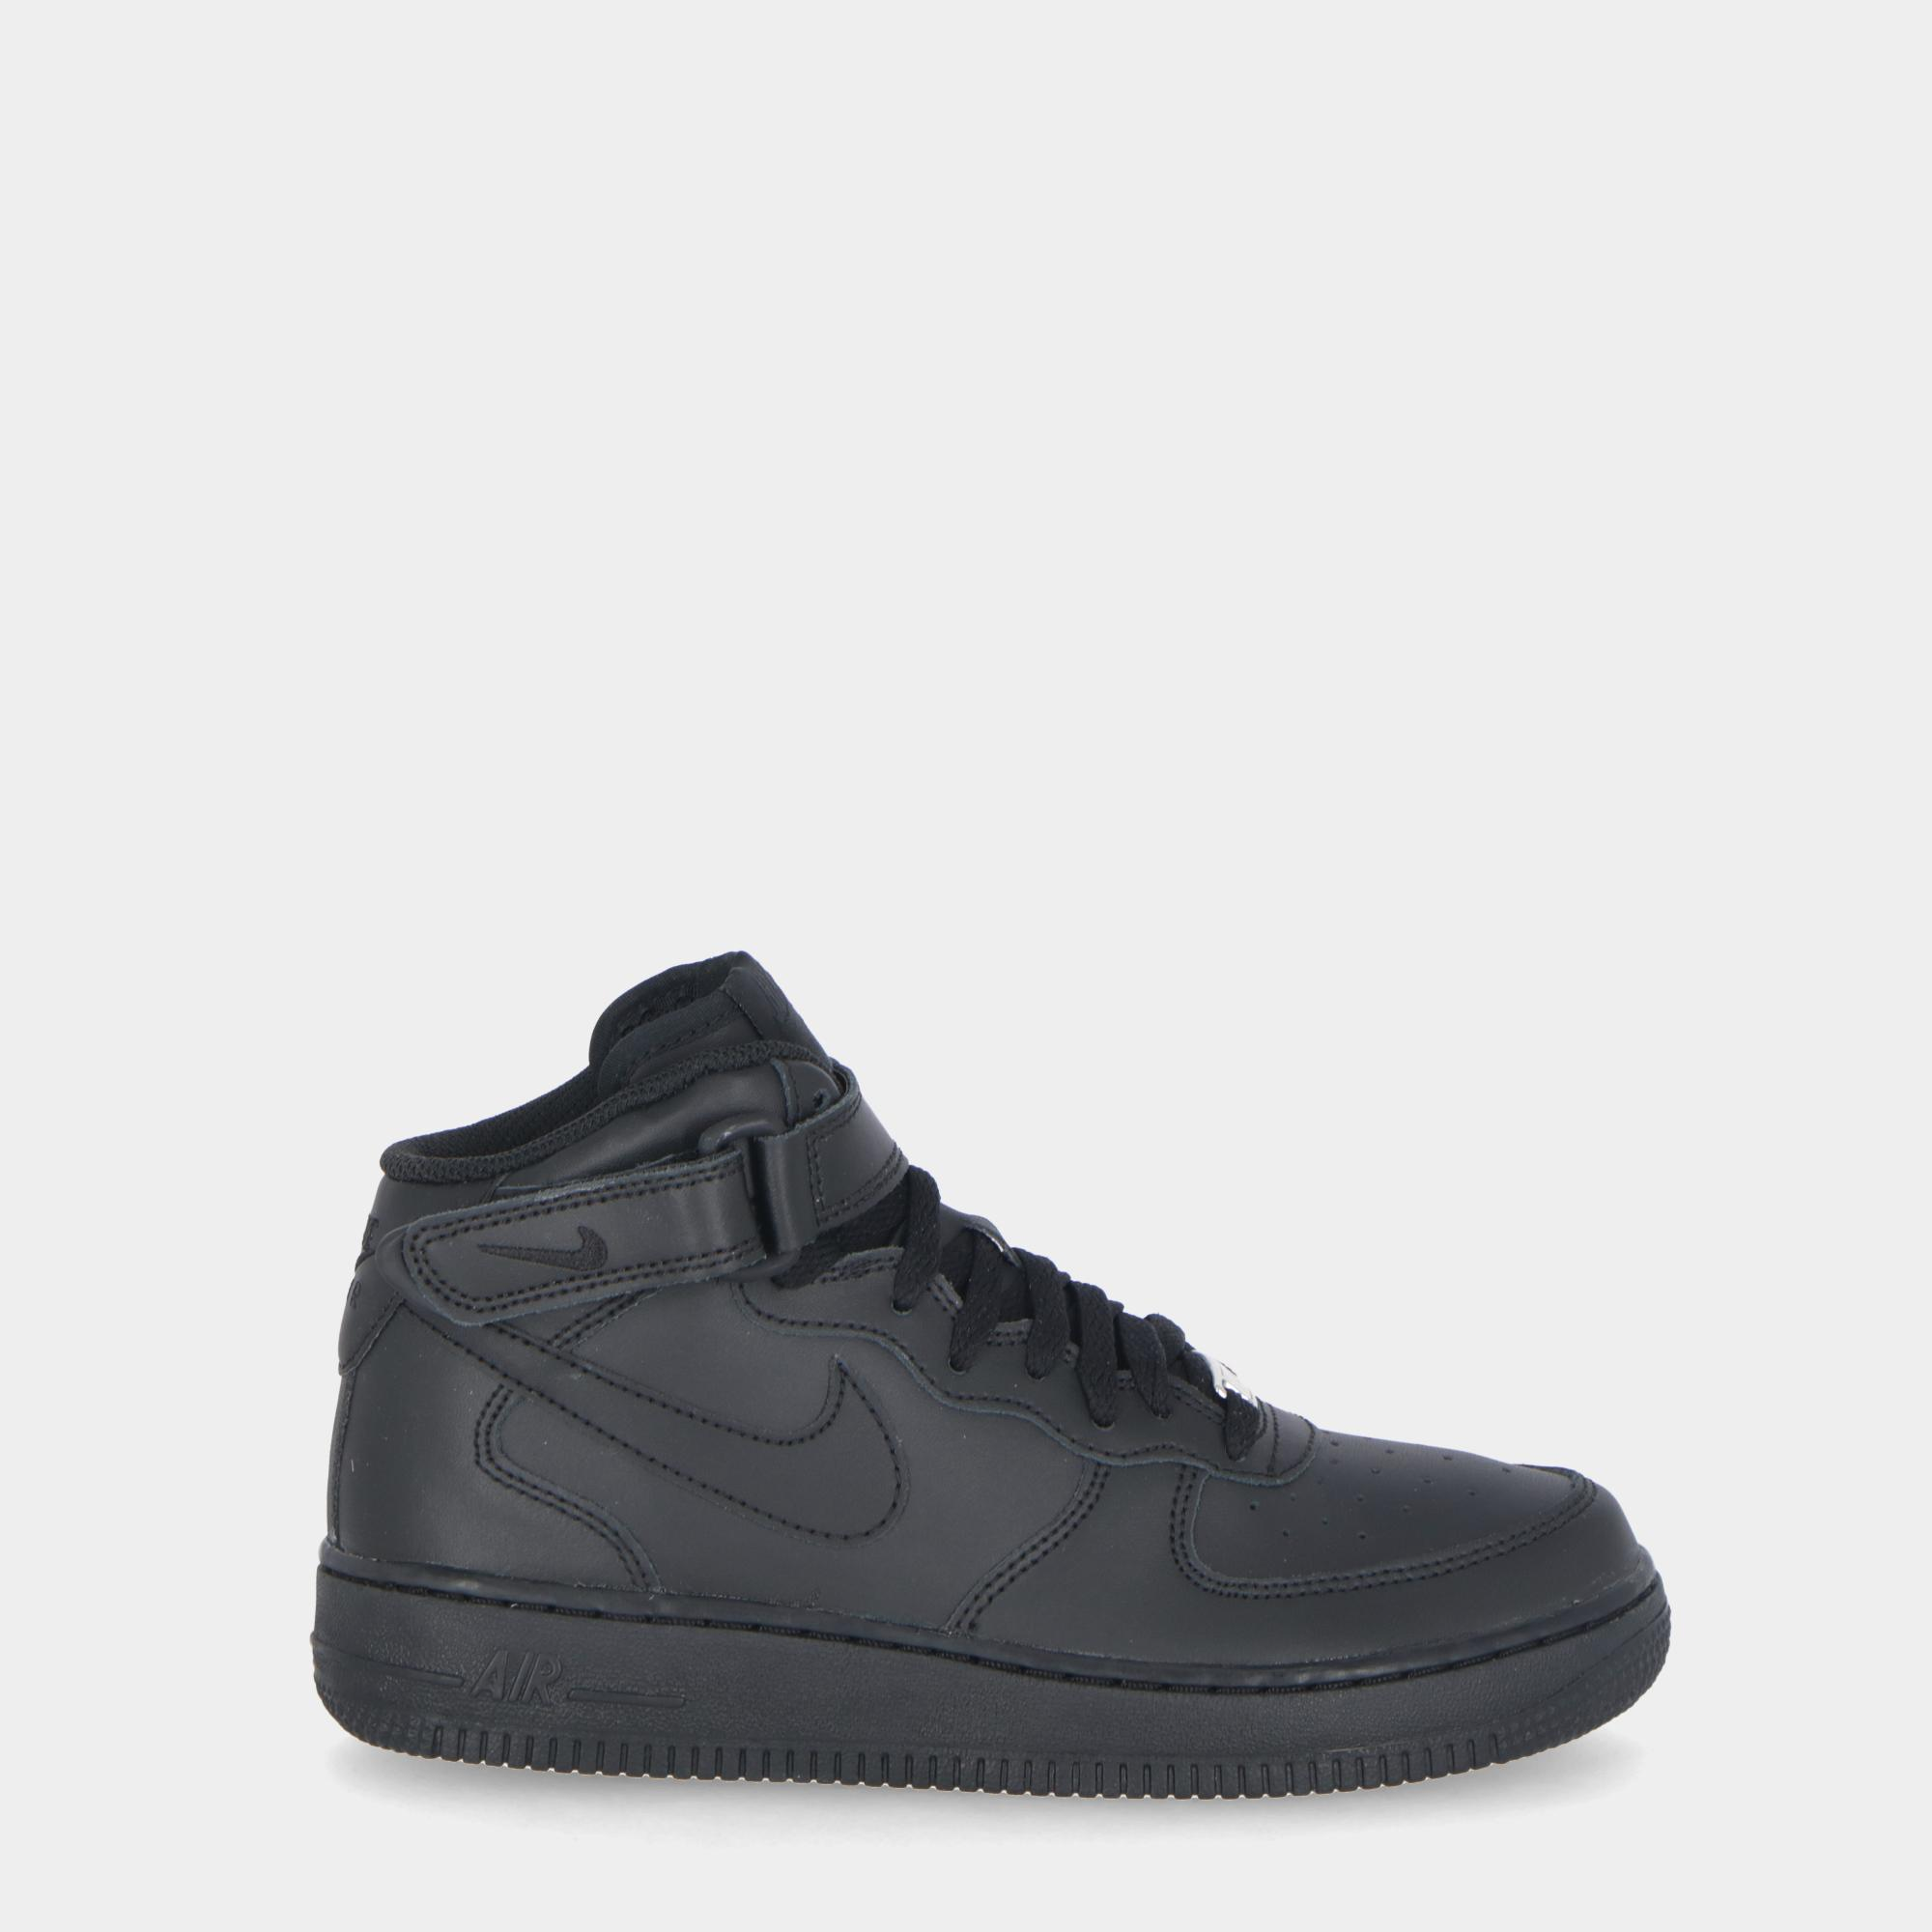 size 40 c6862 3342a Nike Air Force 1 Mid '07 Black Black | Treesse